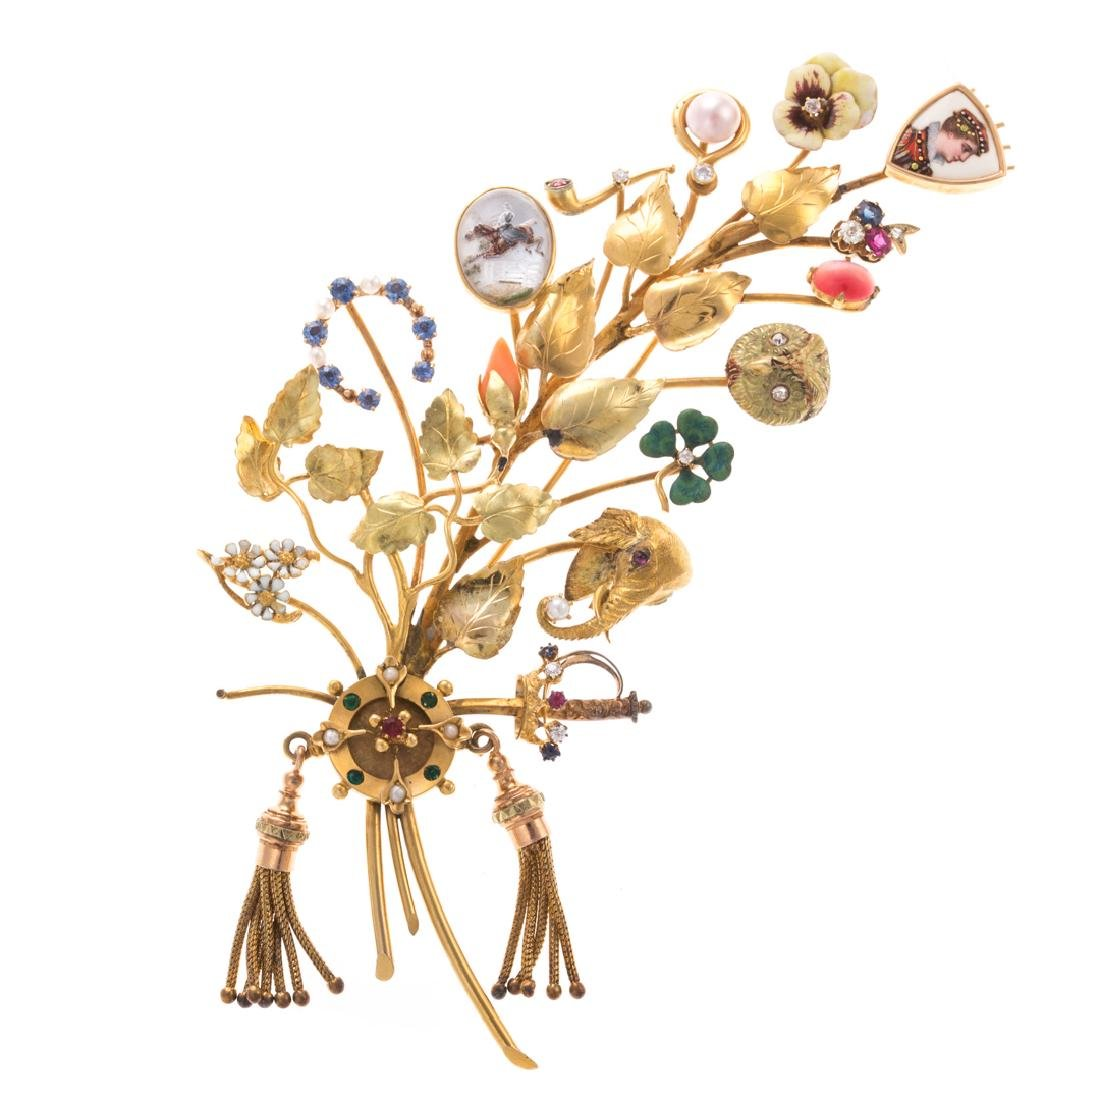 A Lady's Leaf Stick Pin Brooch by Oscar Caplan